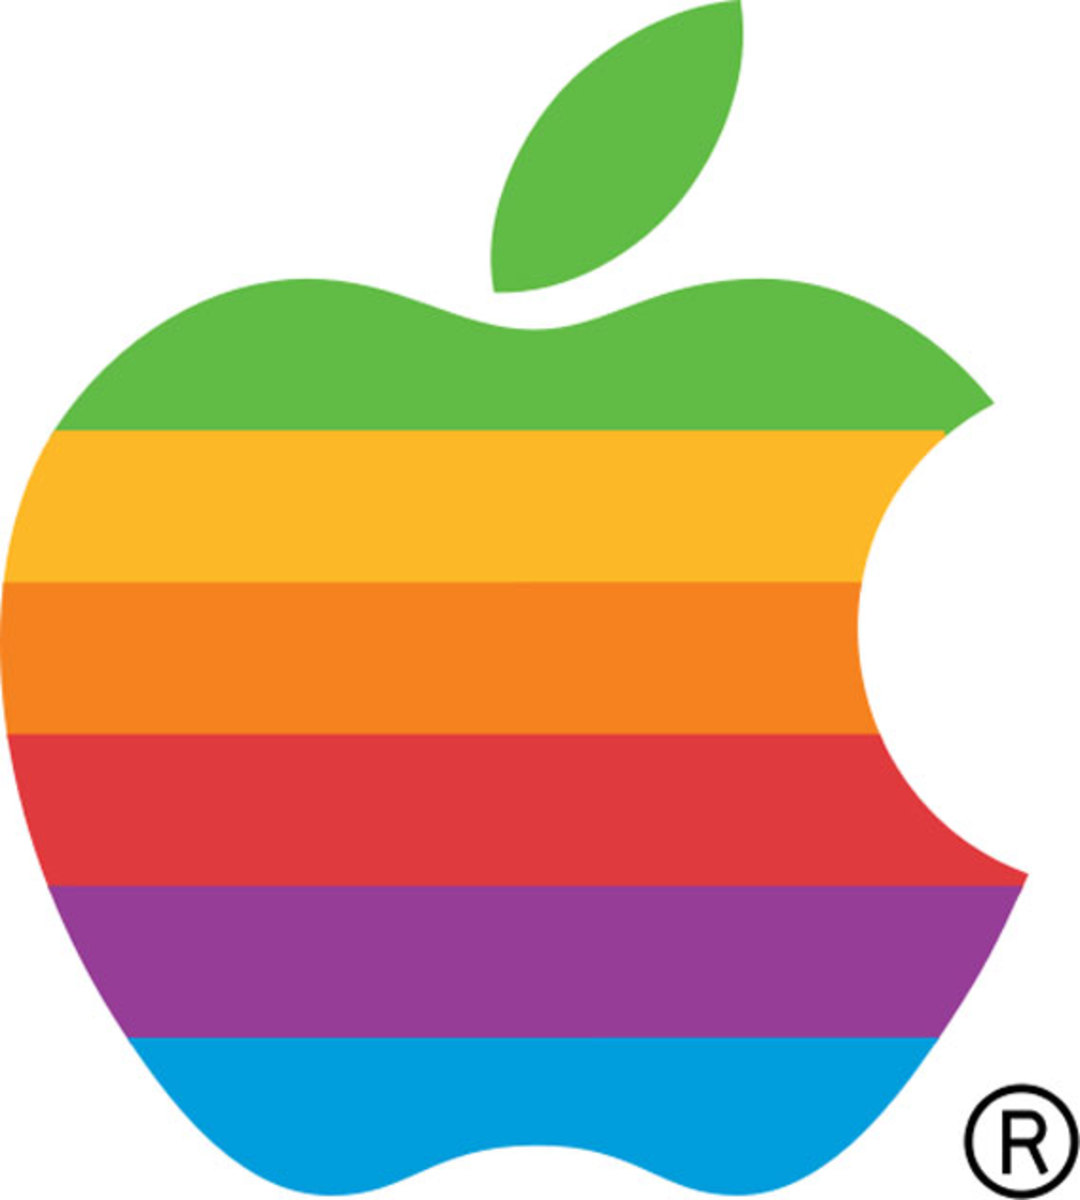 In 2016, Apple was the world's most admired company.